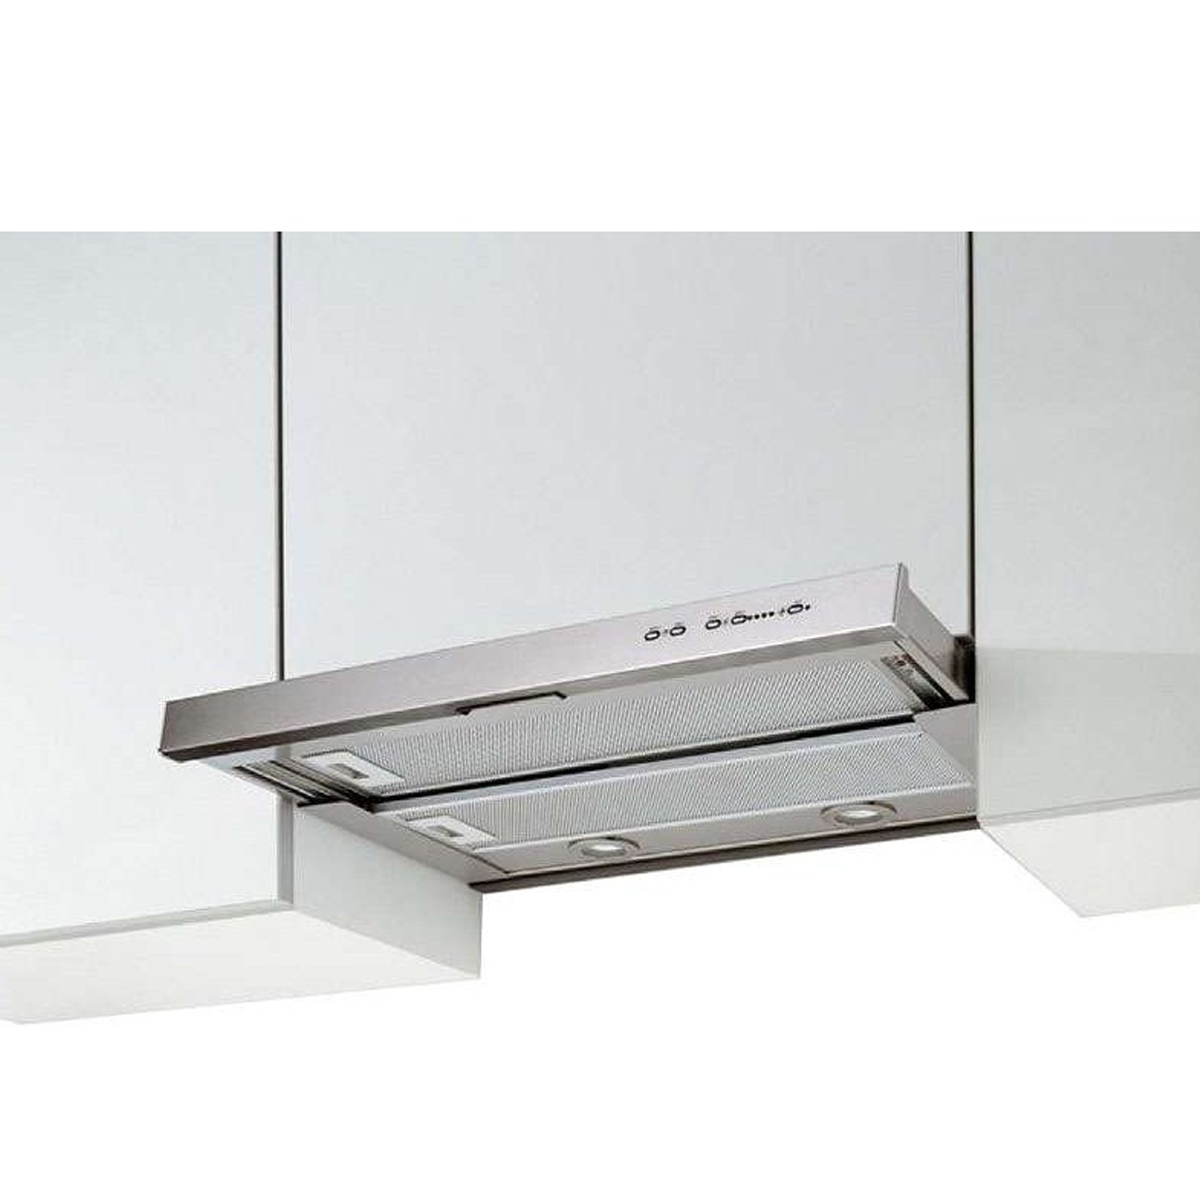 Smeg SA5502X90 Stainless Steel 90cm Slide Out Rangehood